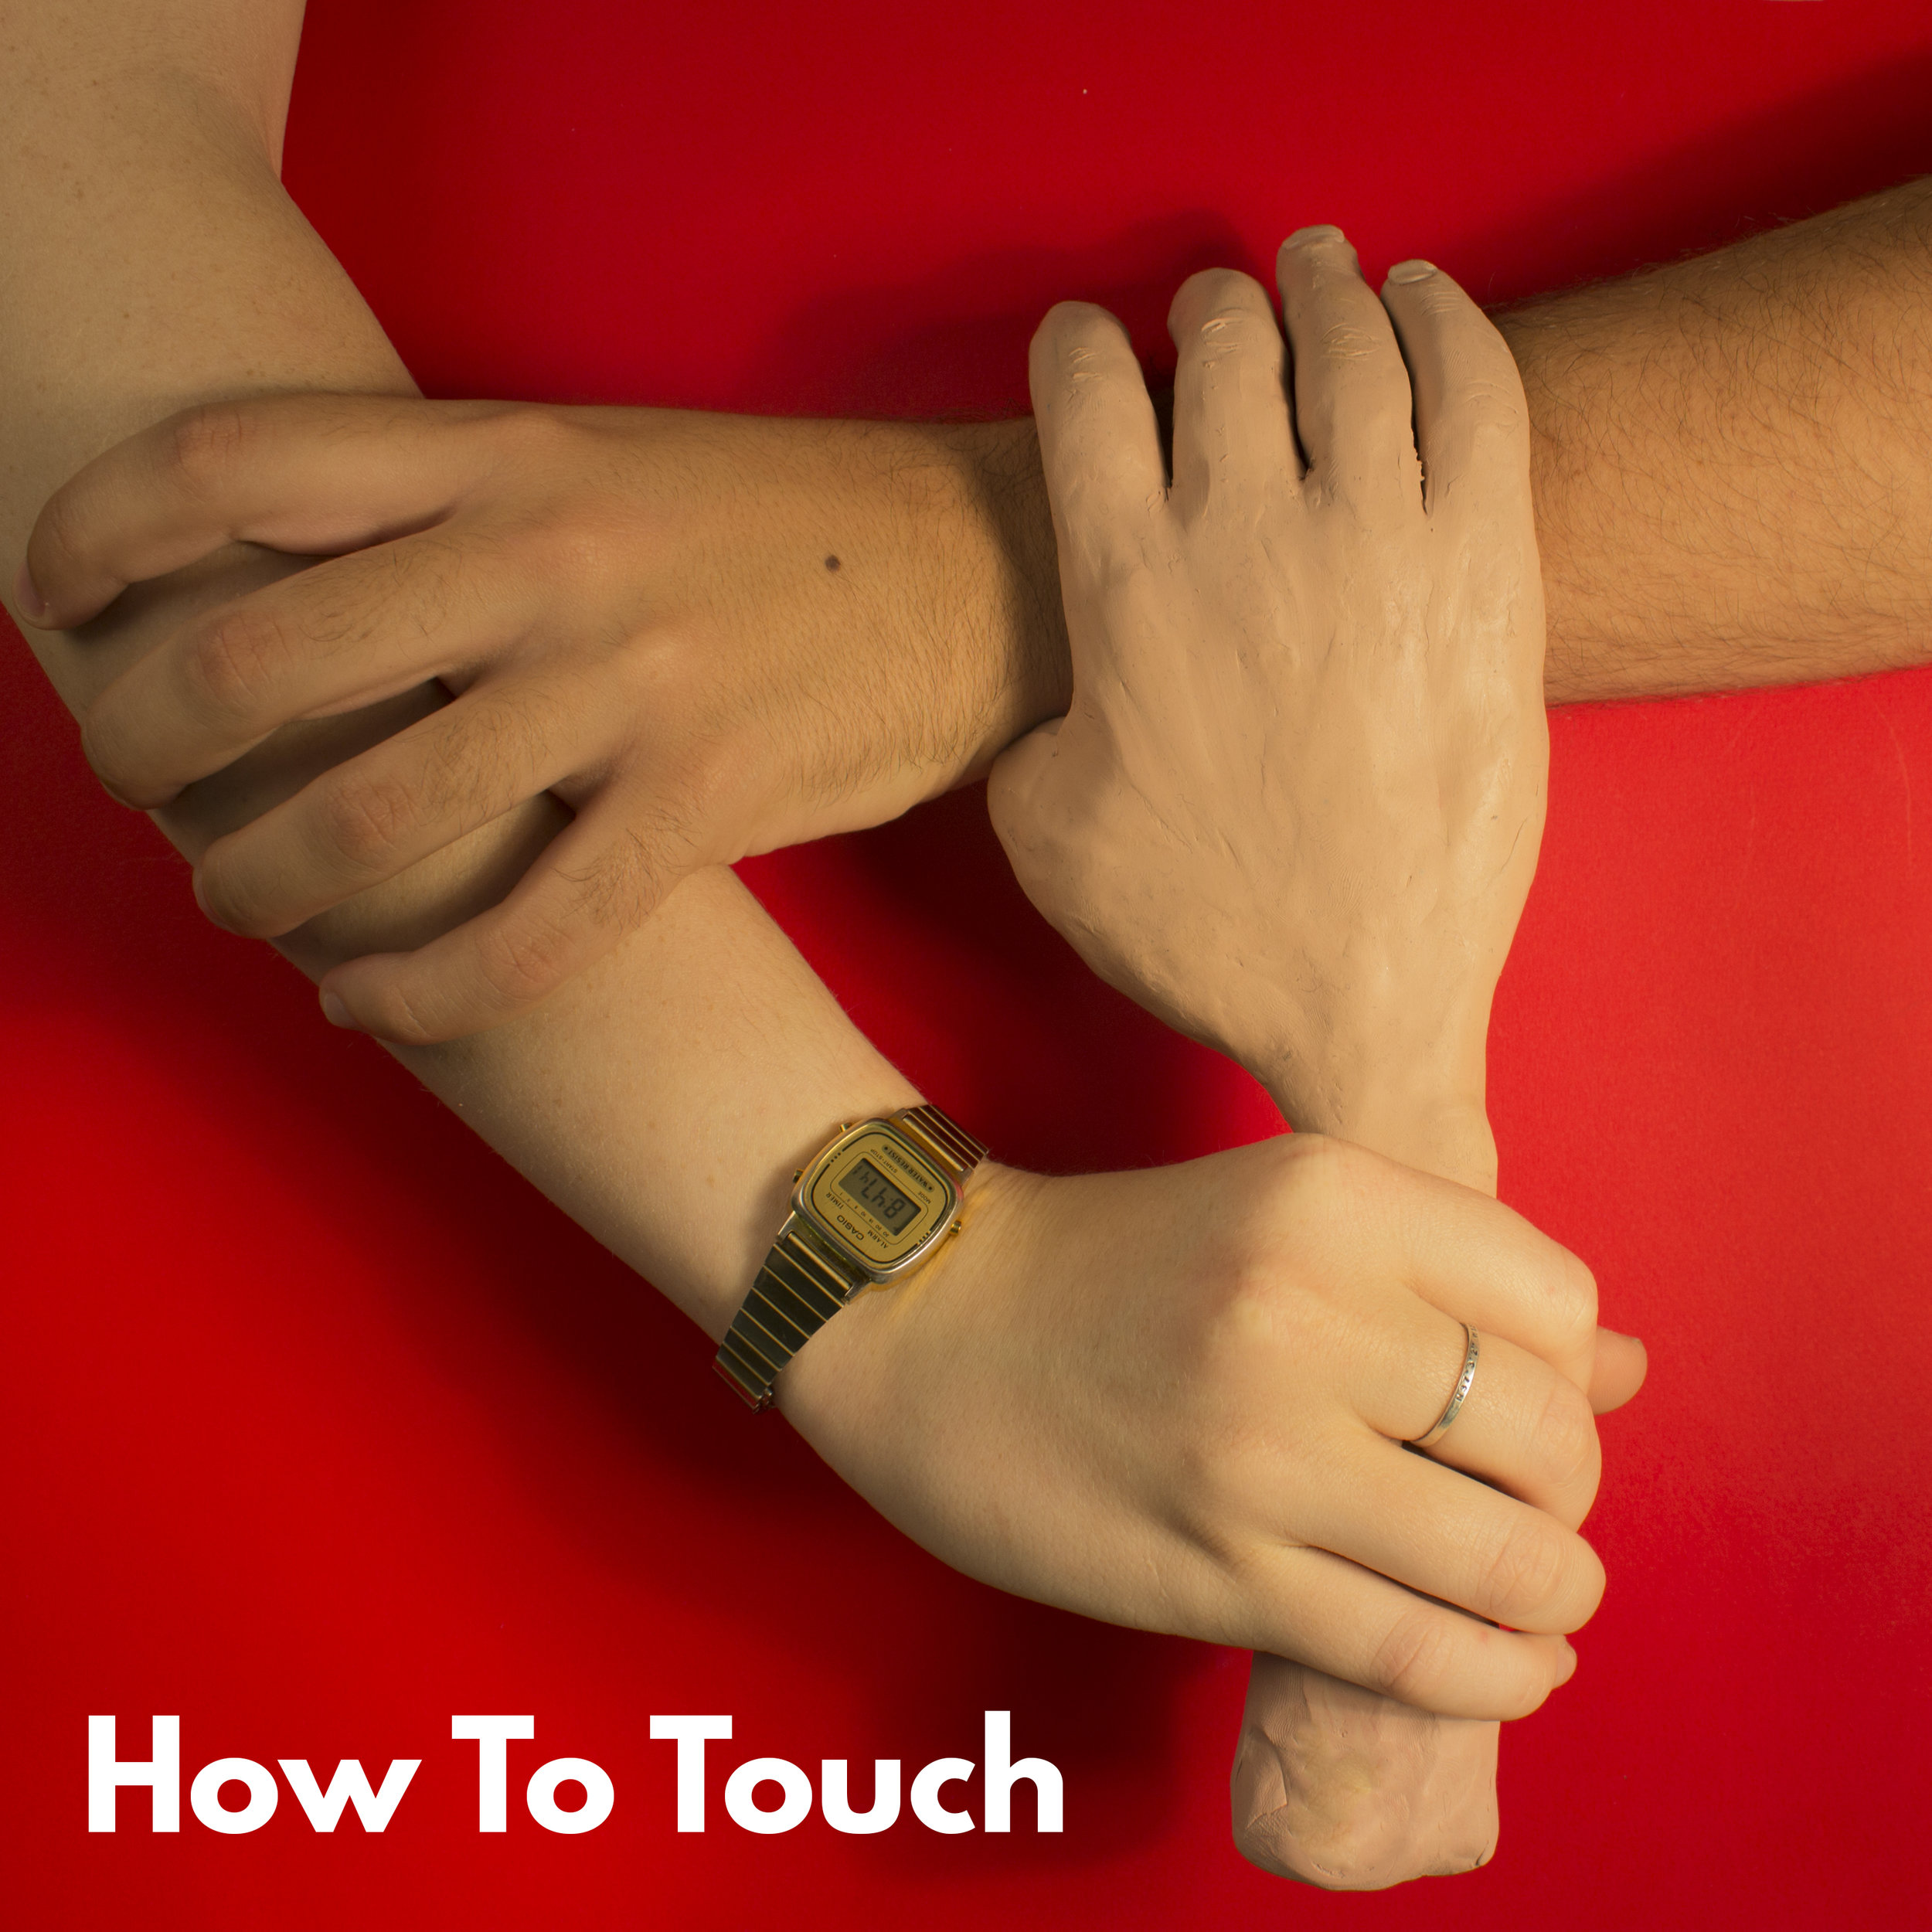 HOW TO TOUCH